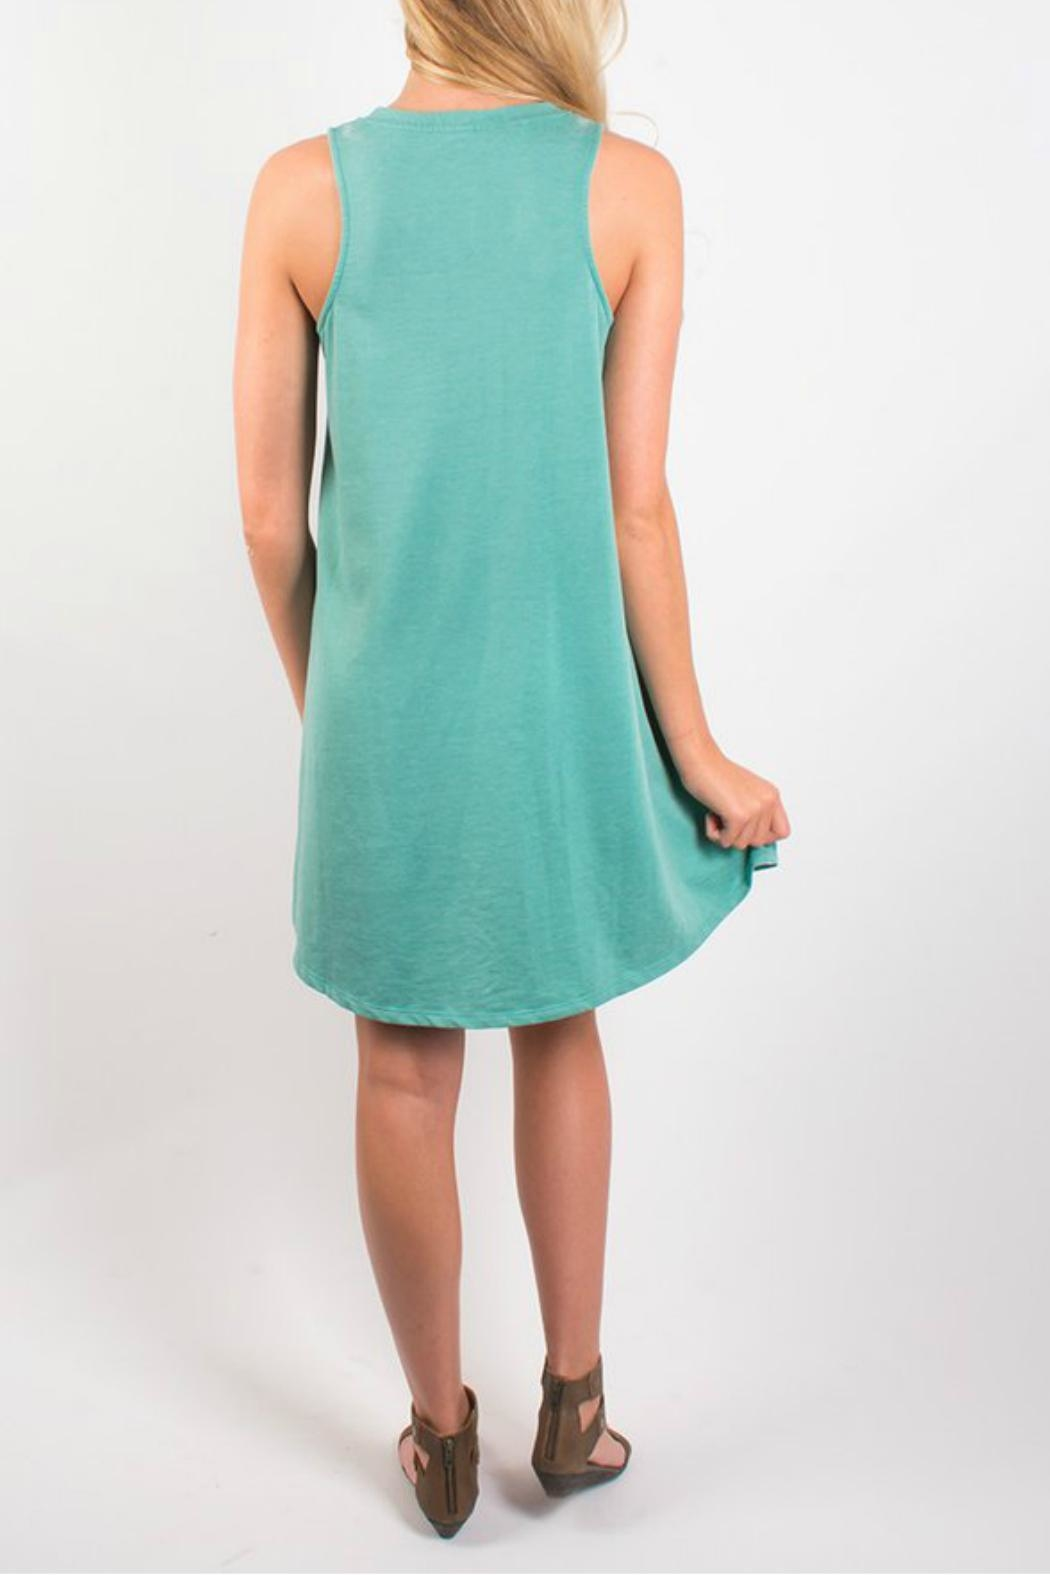 z supply All-Tied Up Dress - Front Full Image